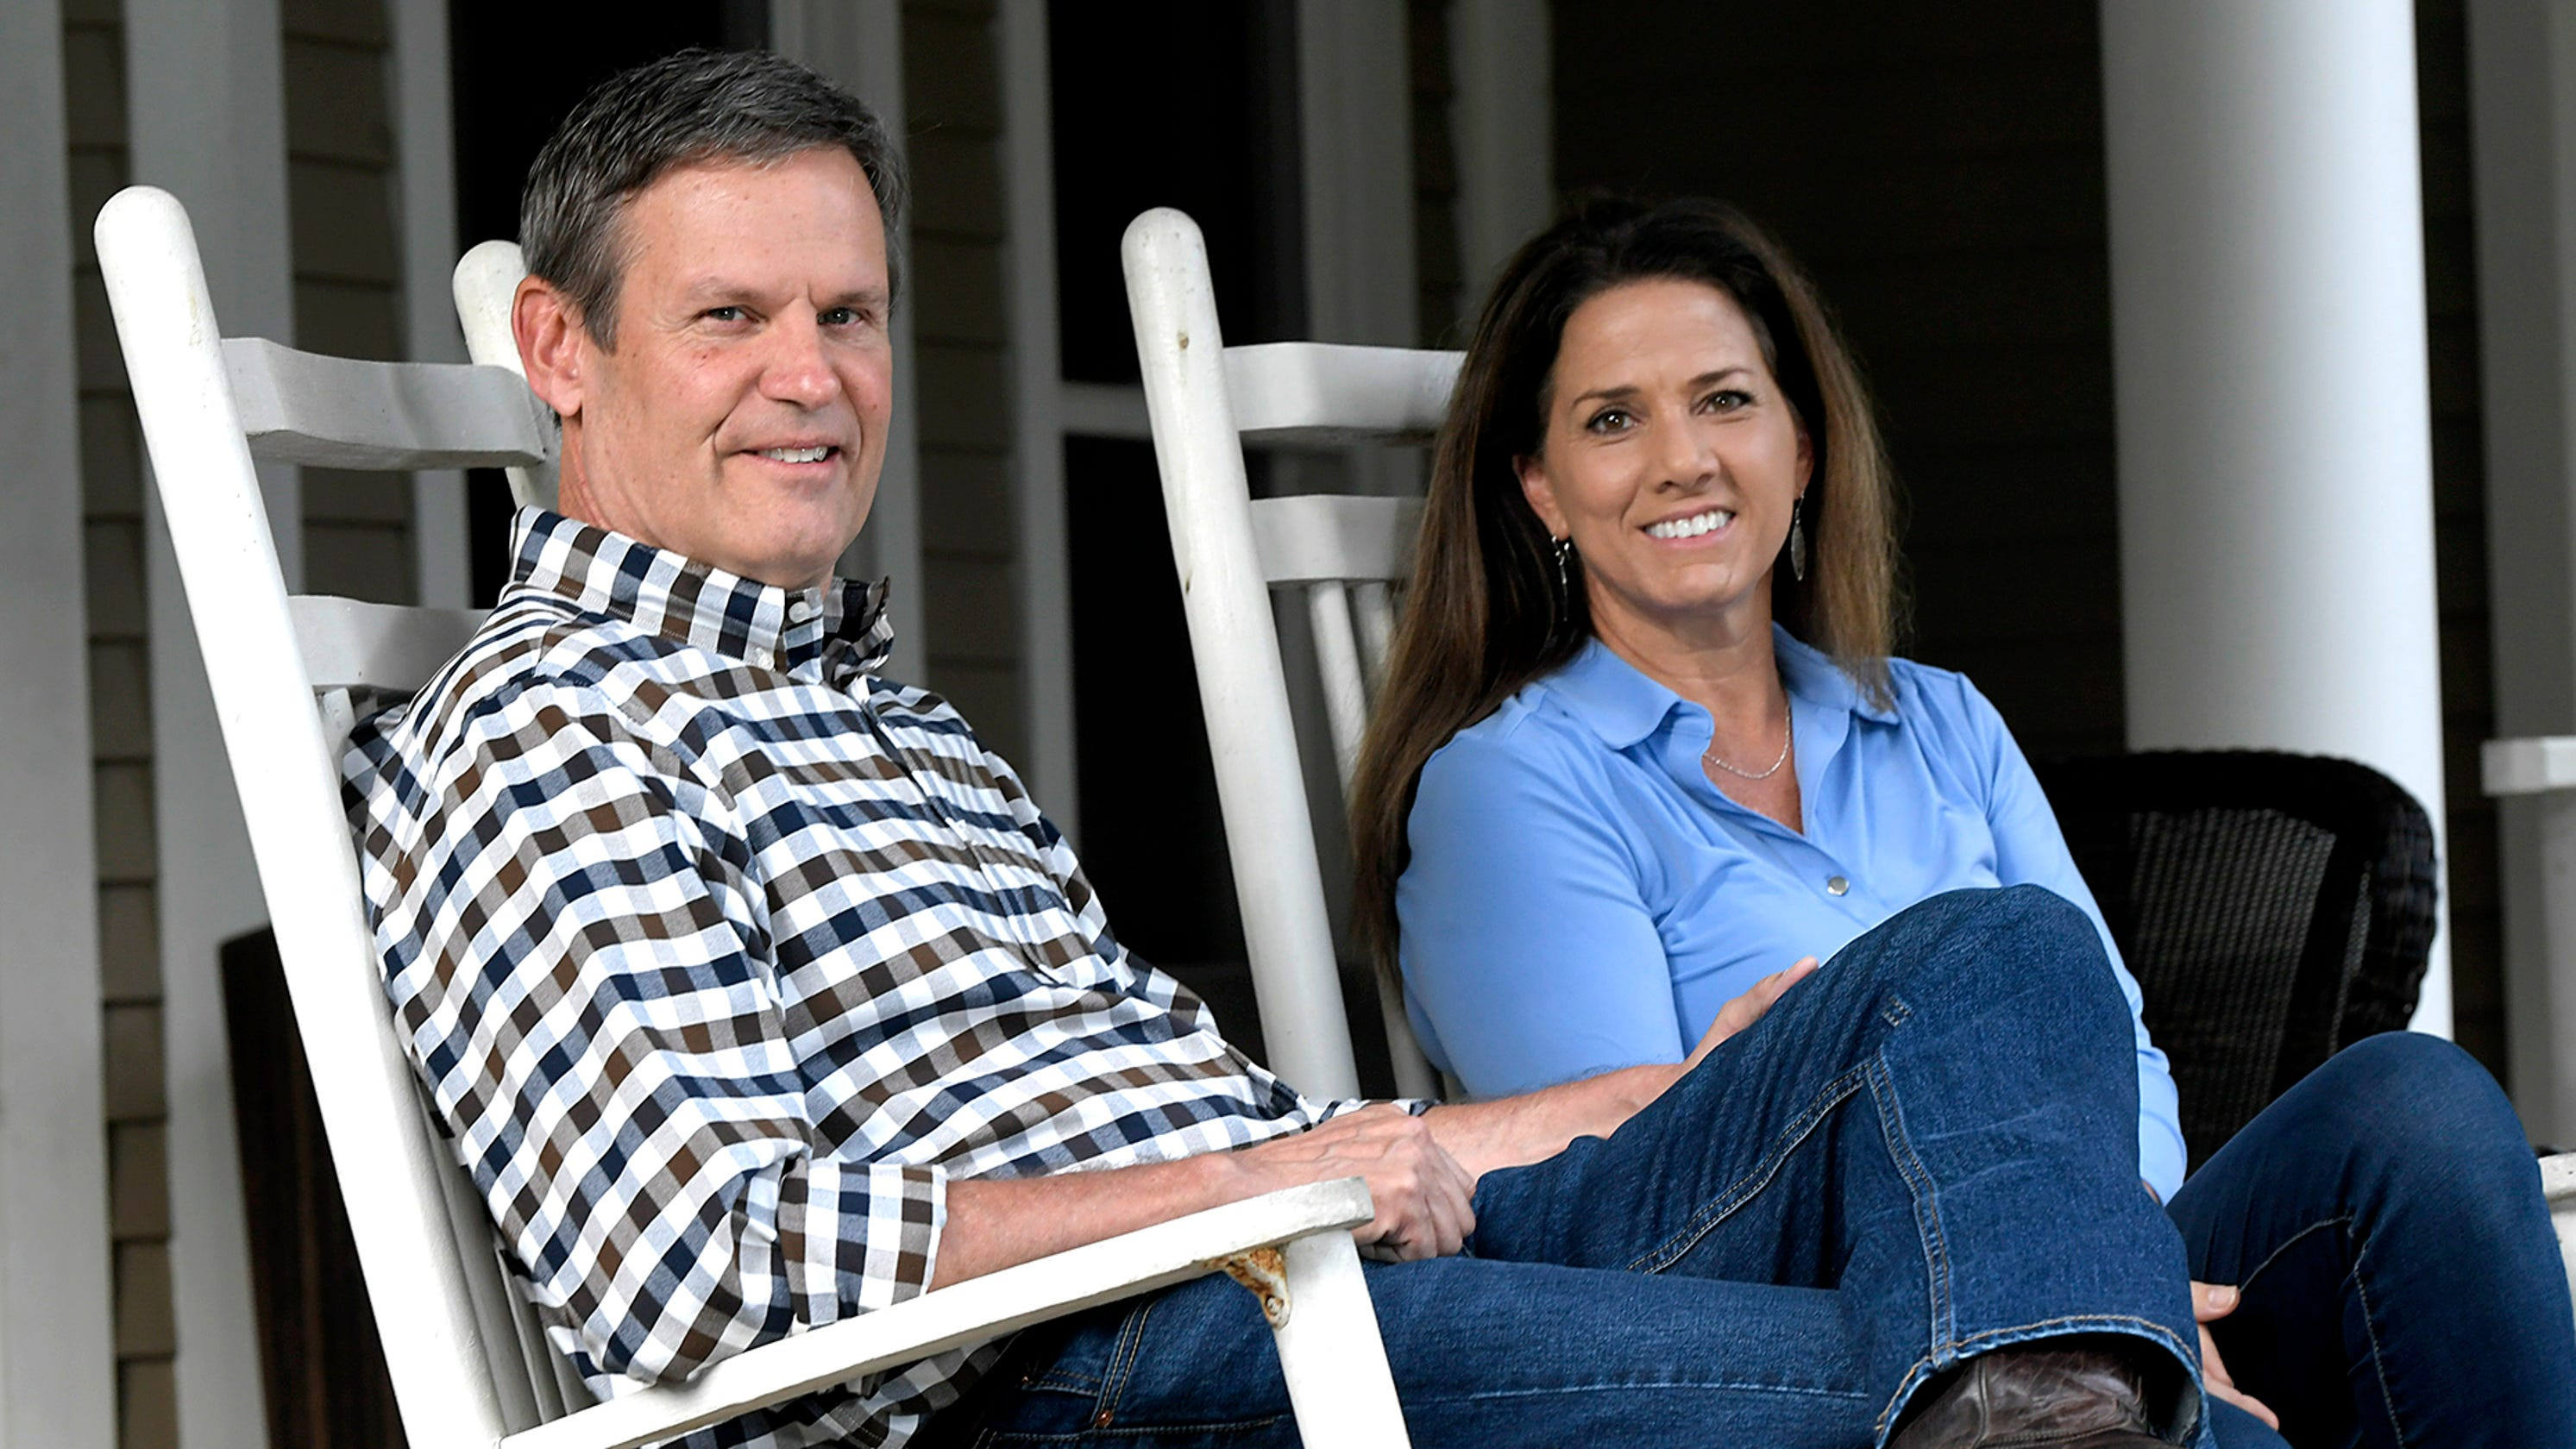 Tennessee elections: Bill Lee and his 'remarkable' political